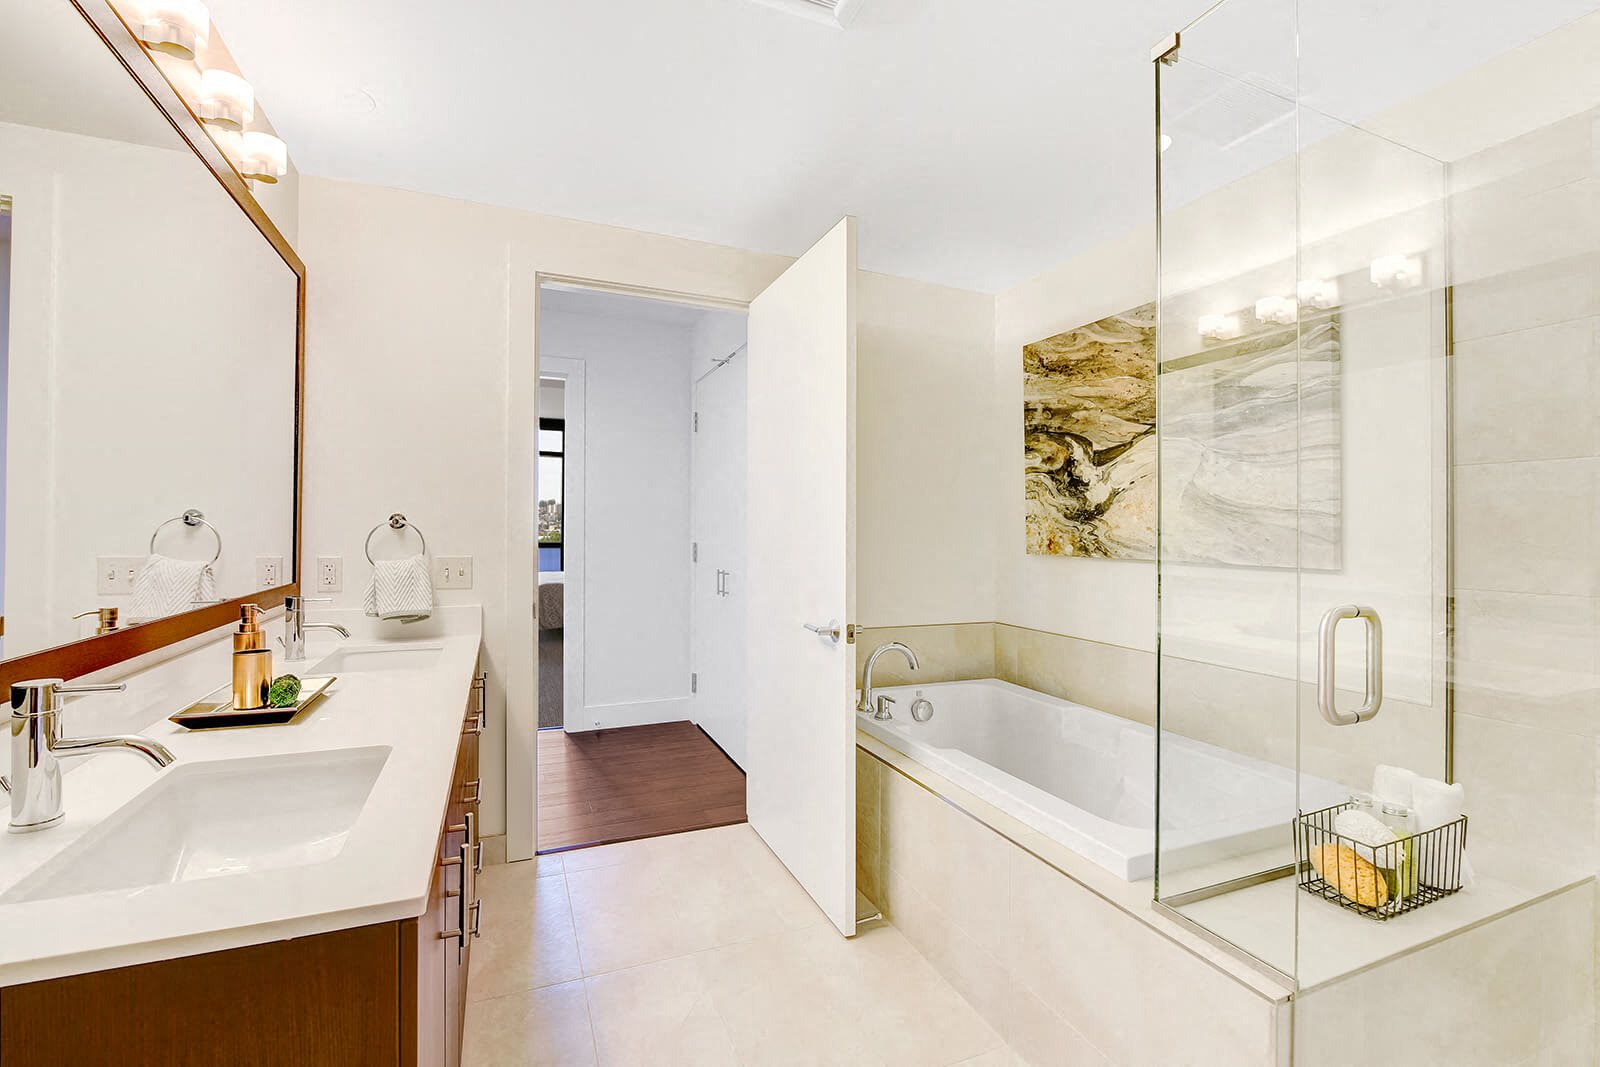 Luxurious Bathrooms with Dual Vanities Available at Cirrus, Washington, 98121